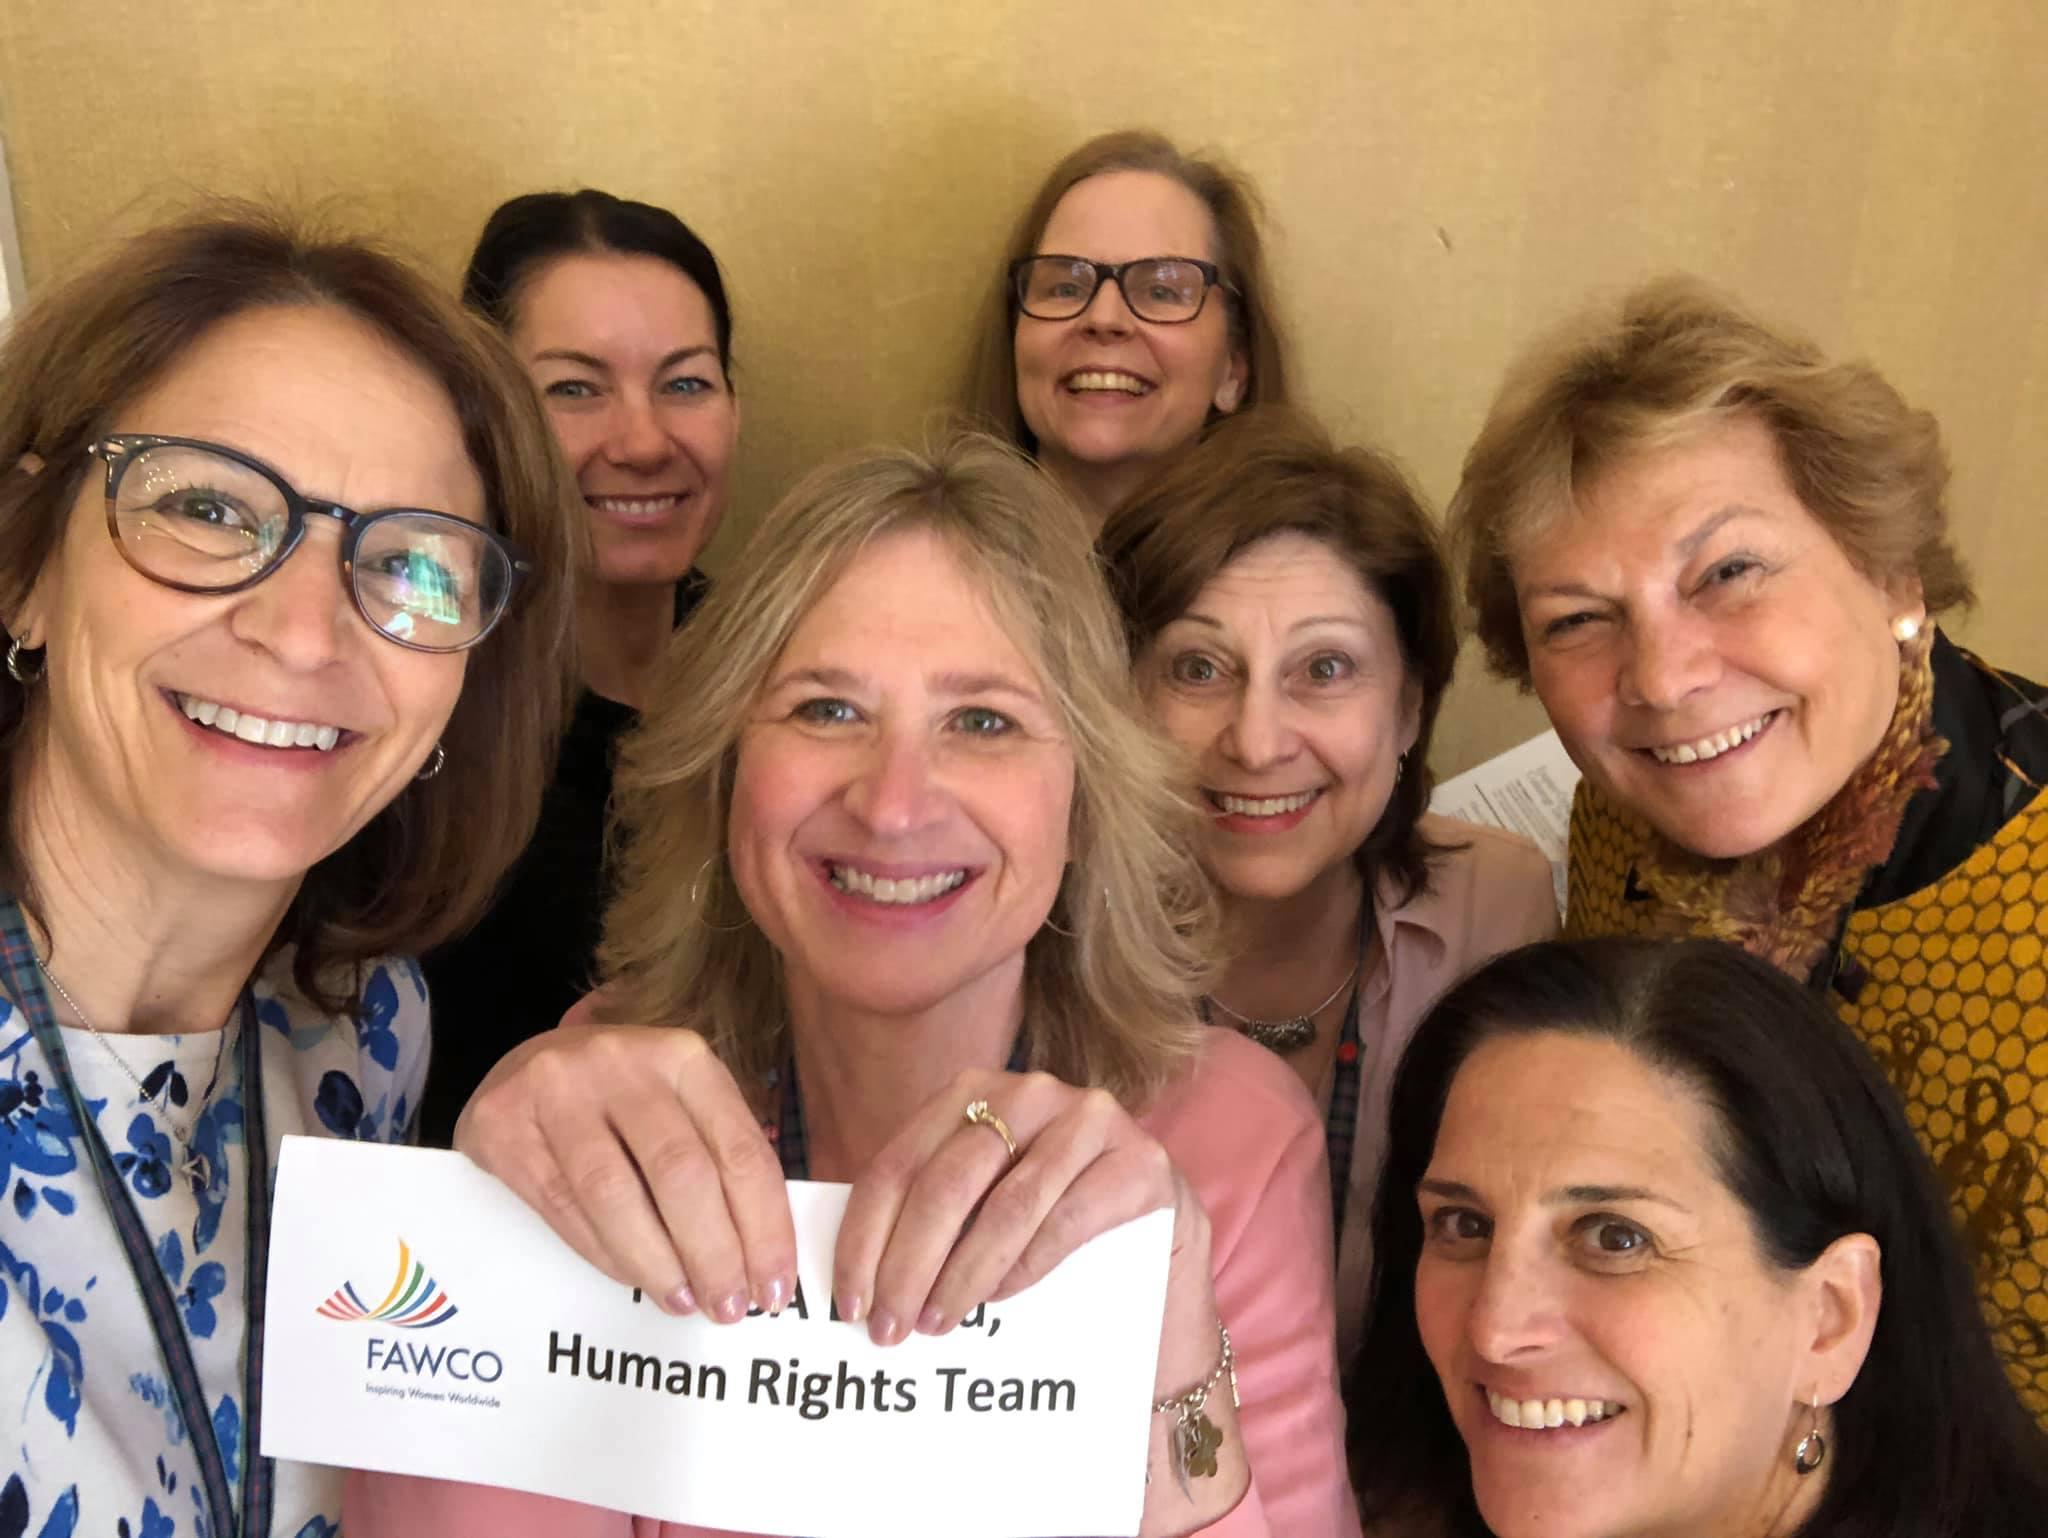 Happy Human Rights Team